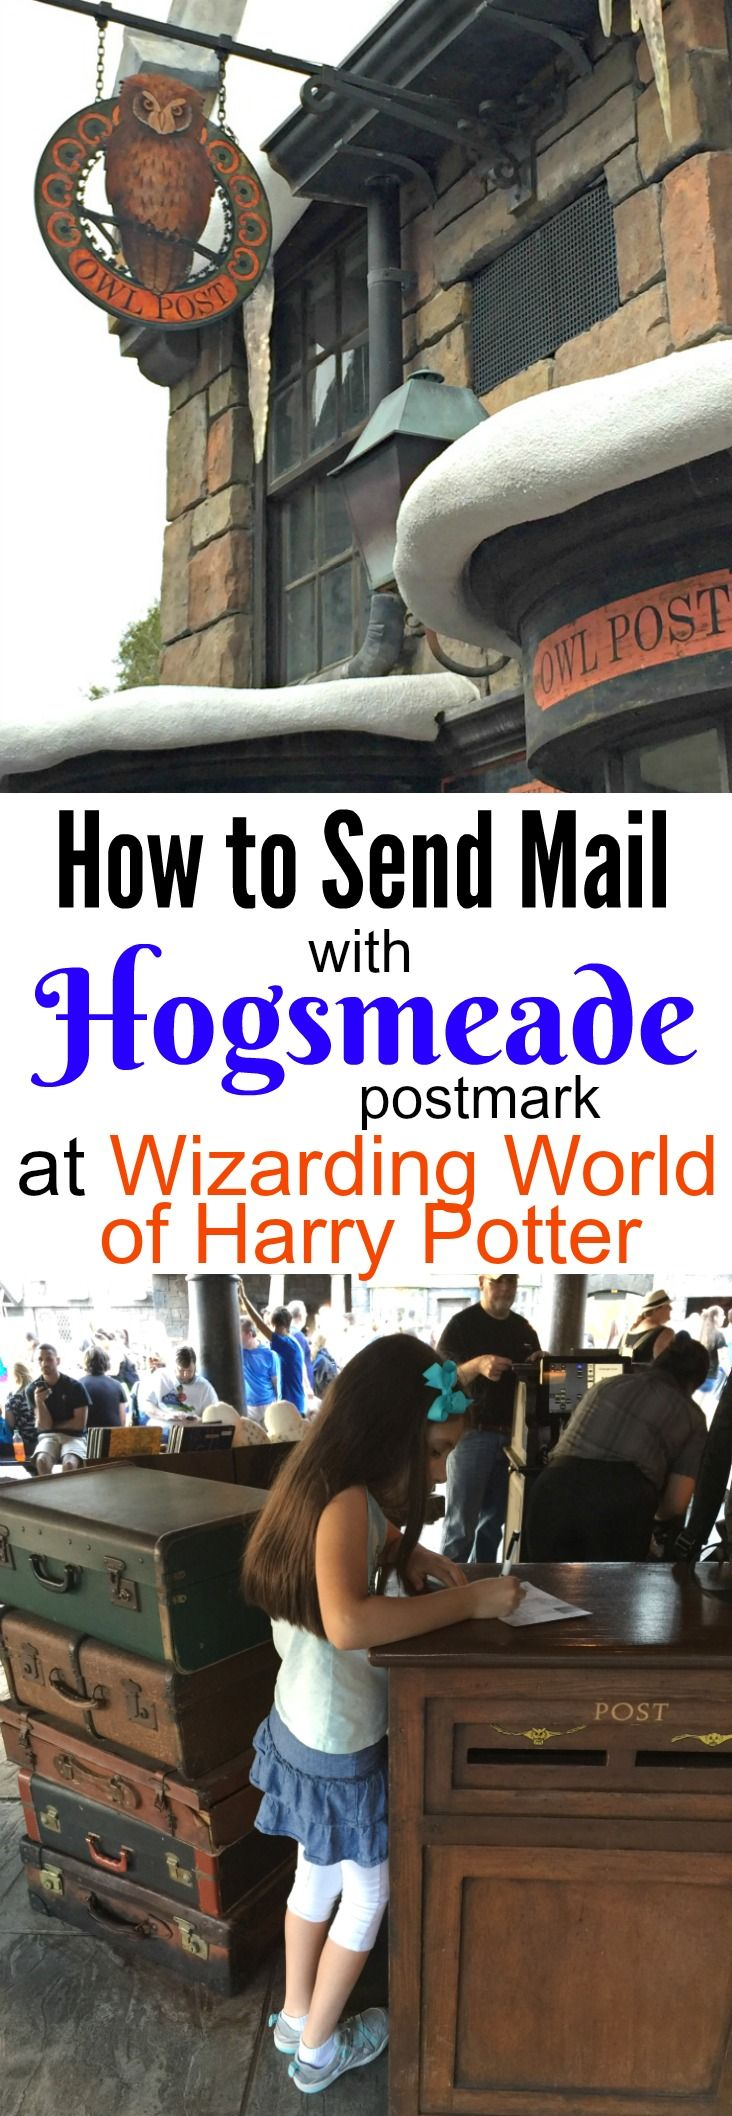 How to send mail with Hogsmeade postmark at The Wizarding World of Harry Potter at Universal Orlando! #ad #HarryPotter #familytravel